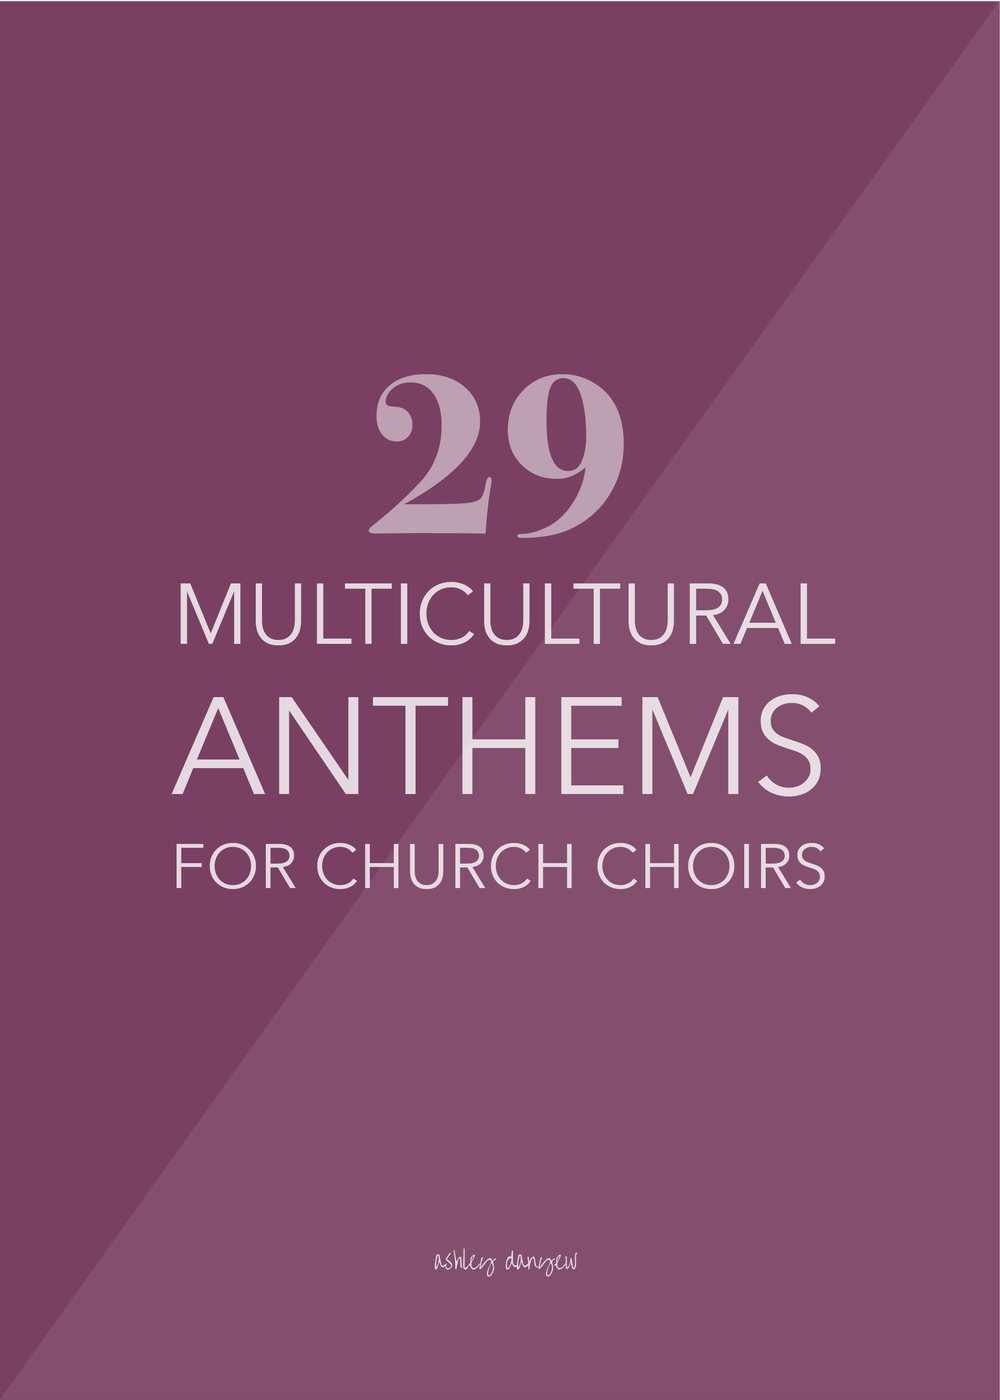 29 Multicultural Anthems for Church Choirs-48.png